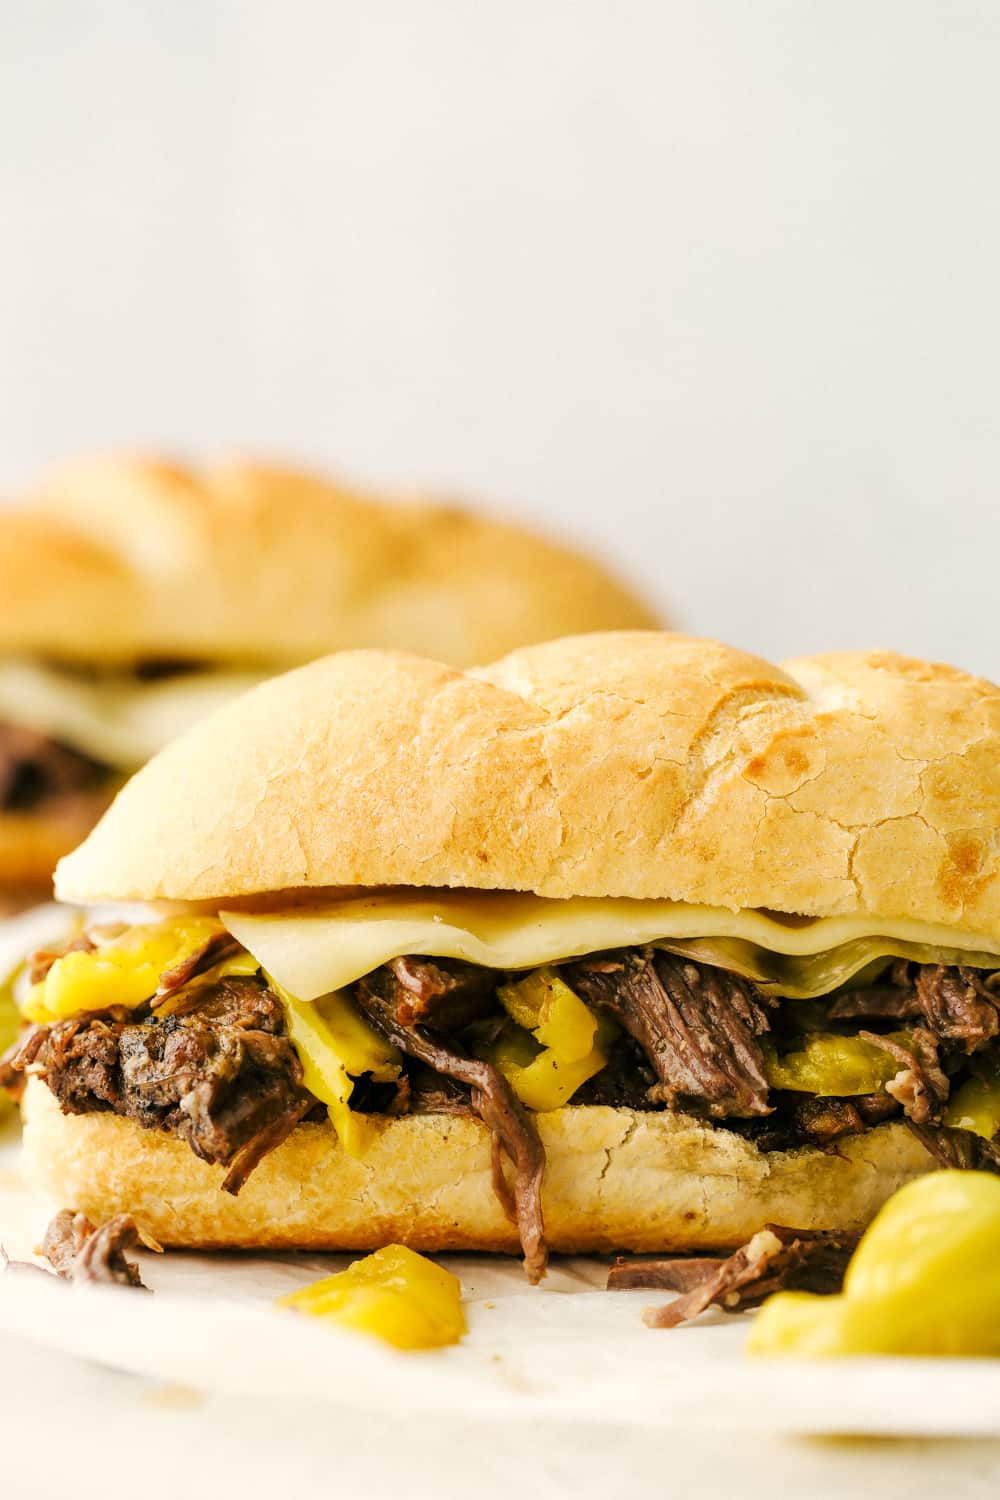 Italian Beef on a hoagie with cheese.